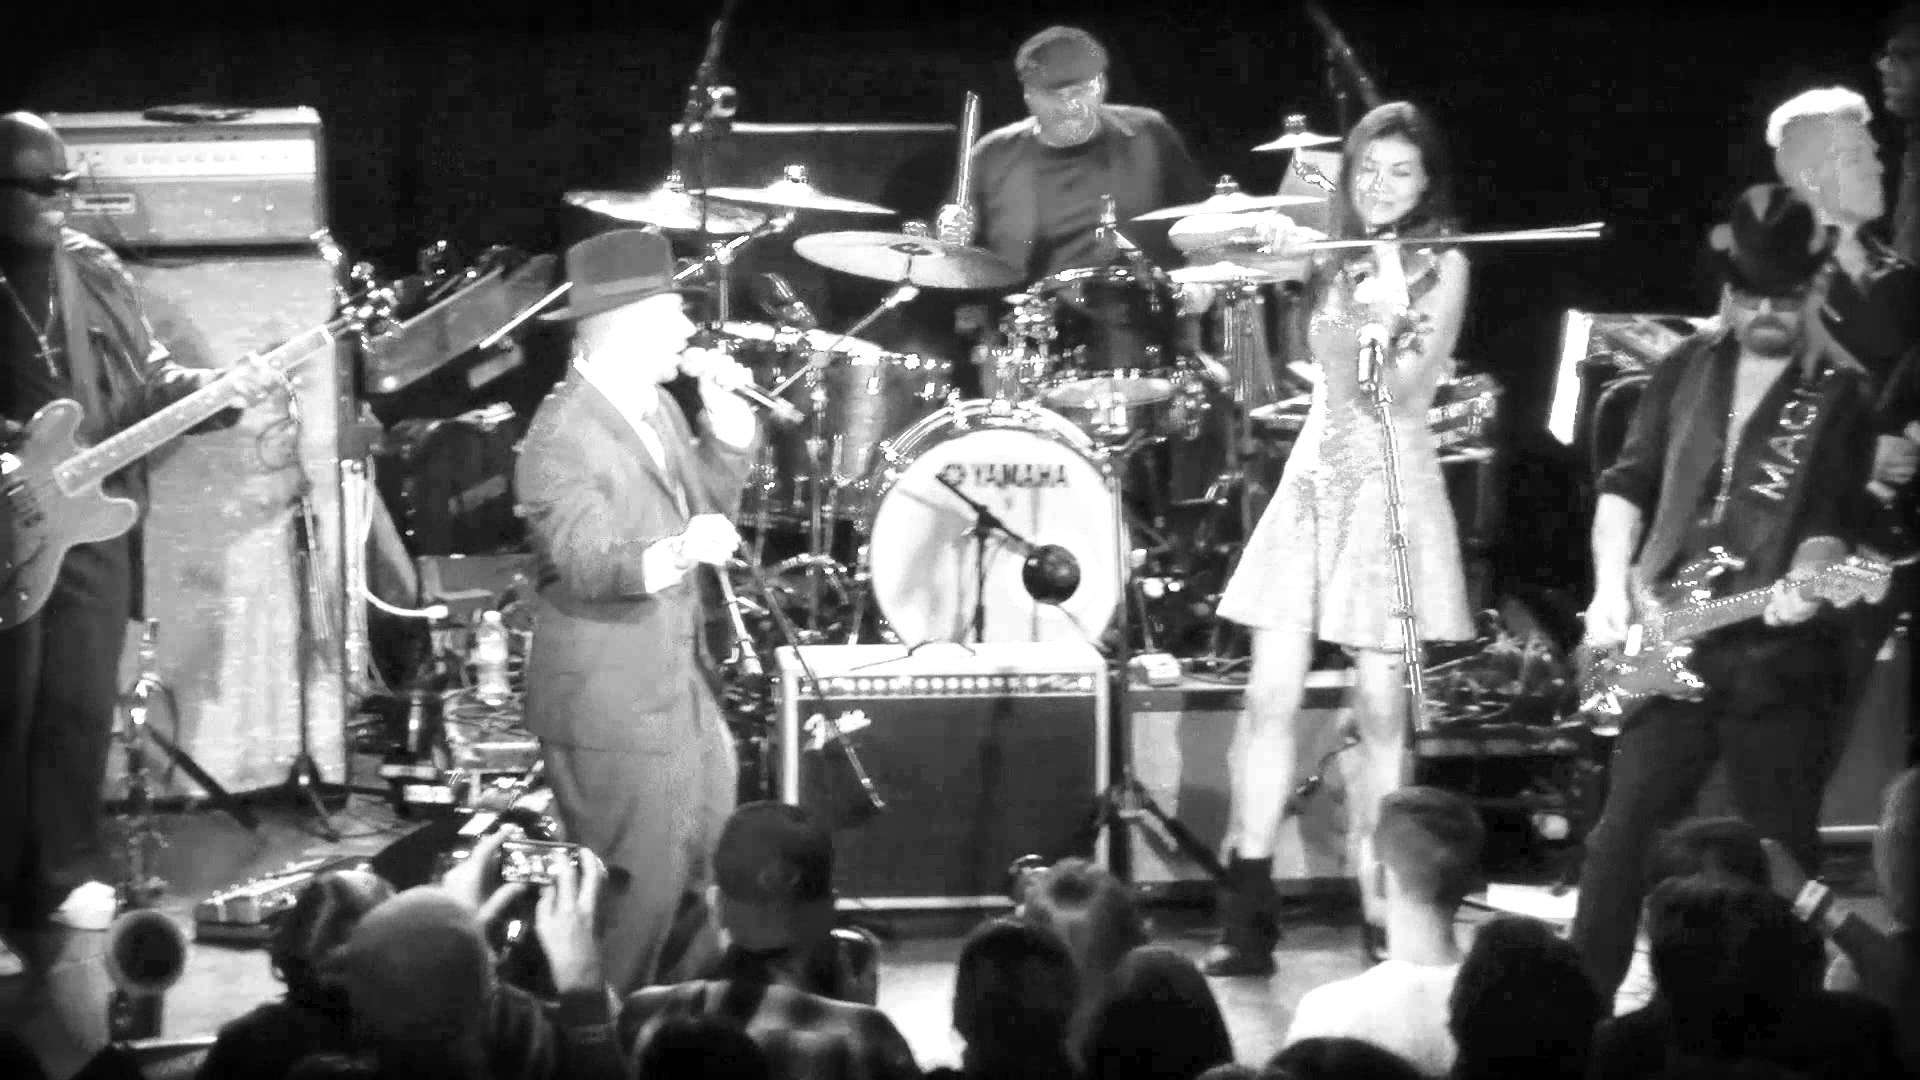 Are you ready for Stewart Lindsey? Here's 4 live videos from Dave Stewart's gig at The Roxy last year